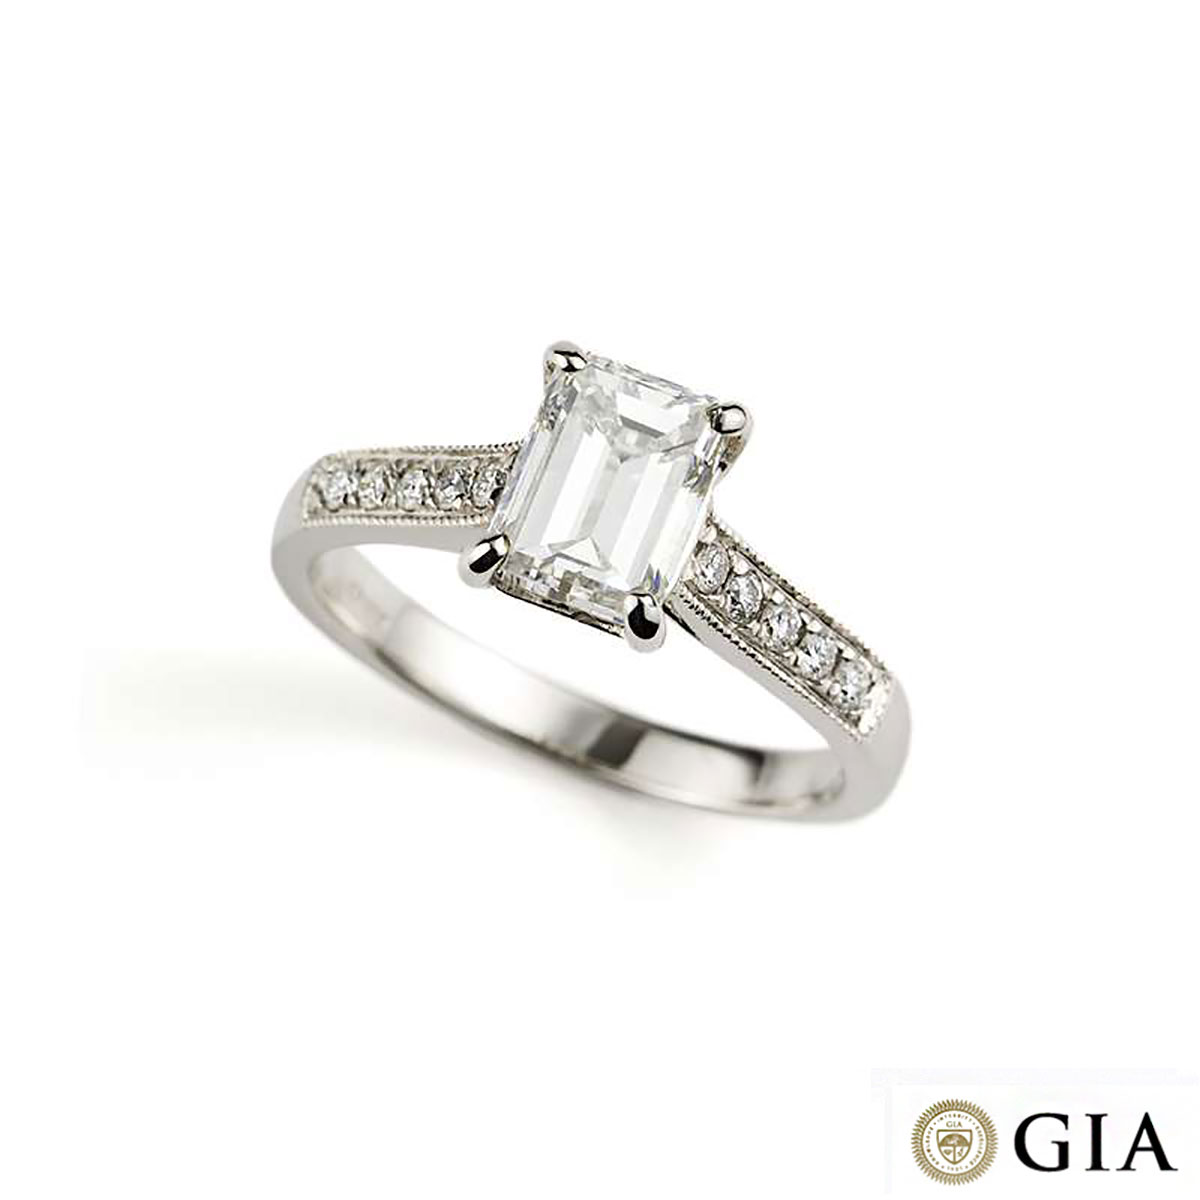 White Gold Emerald Cut Diamond Ring 1.51ct G/VS2